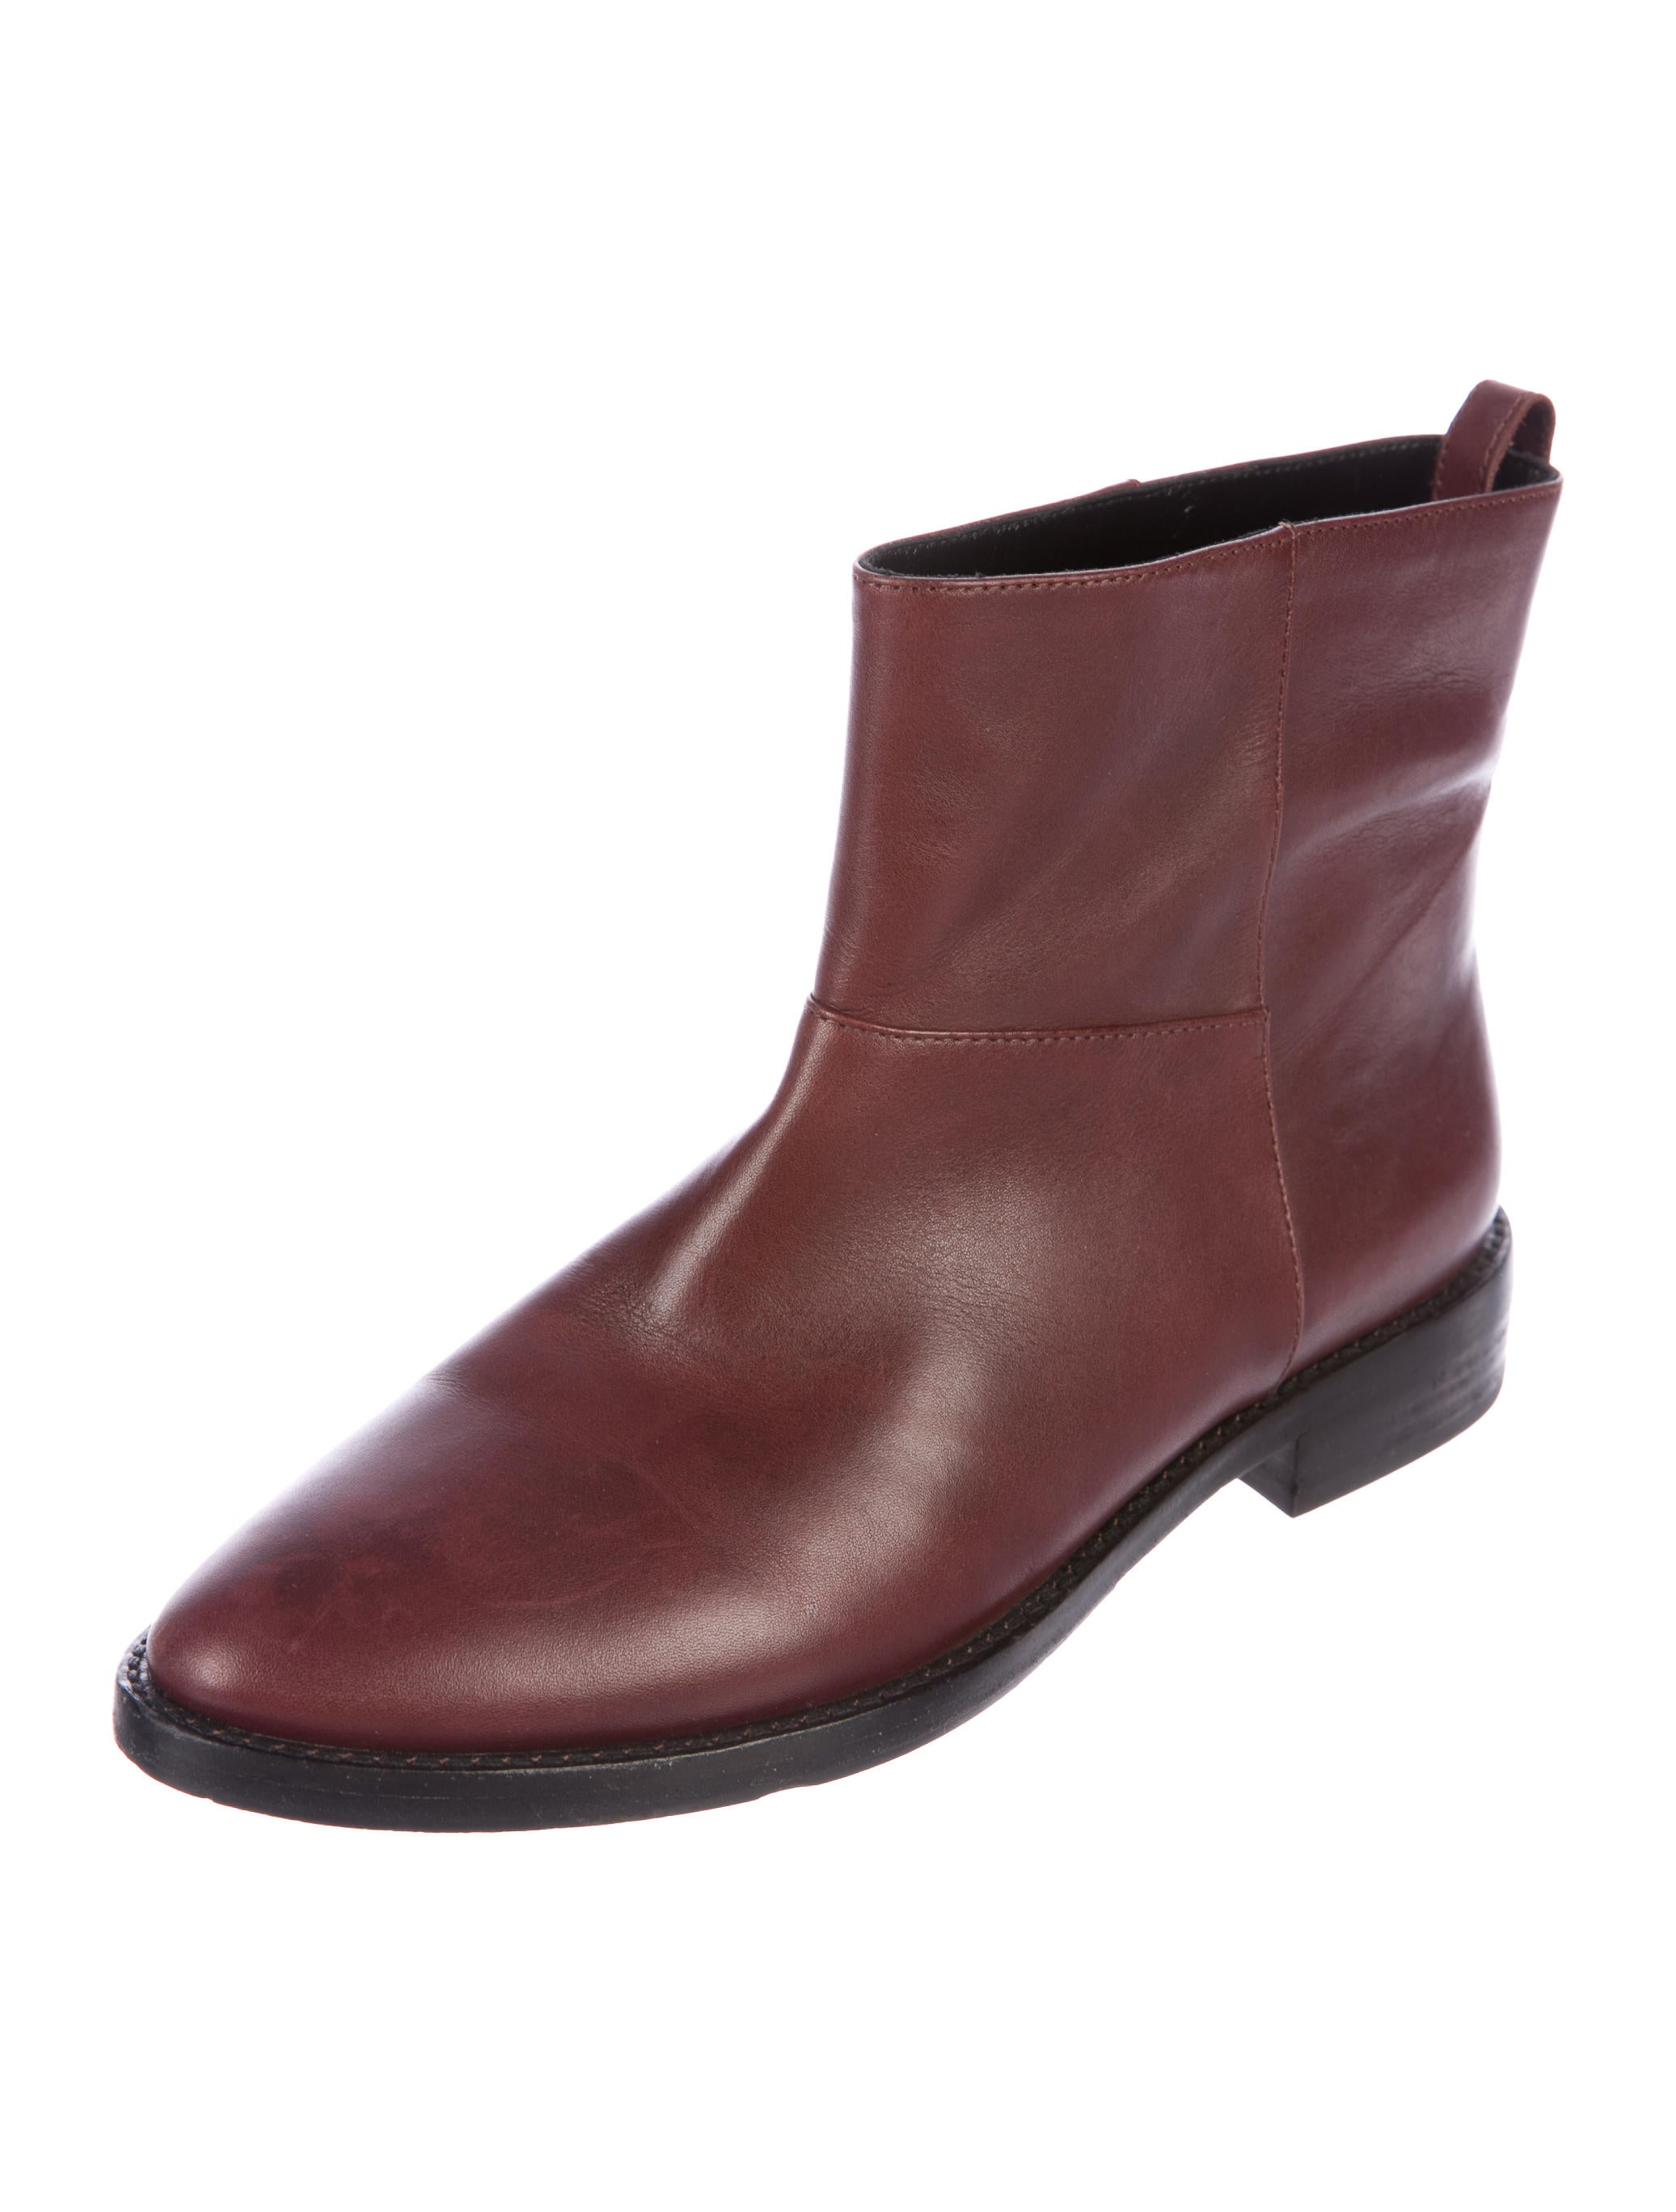 discount shop offer sale best wholesale Theyskens' Theory Leather Semi Pointed-Toe Ankle Boots cYWb2ly